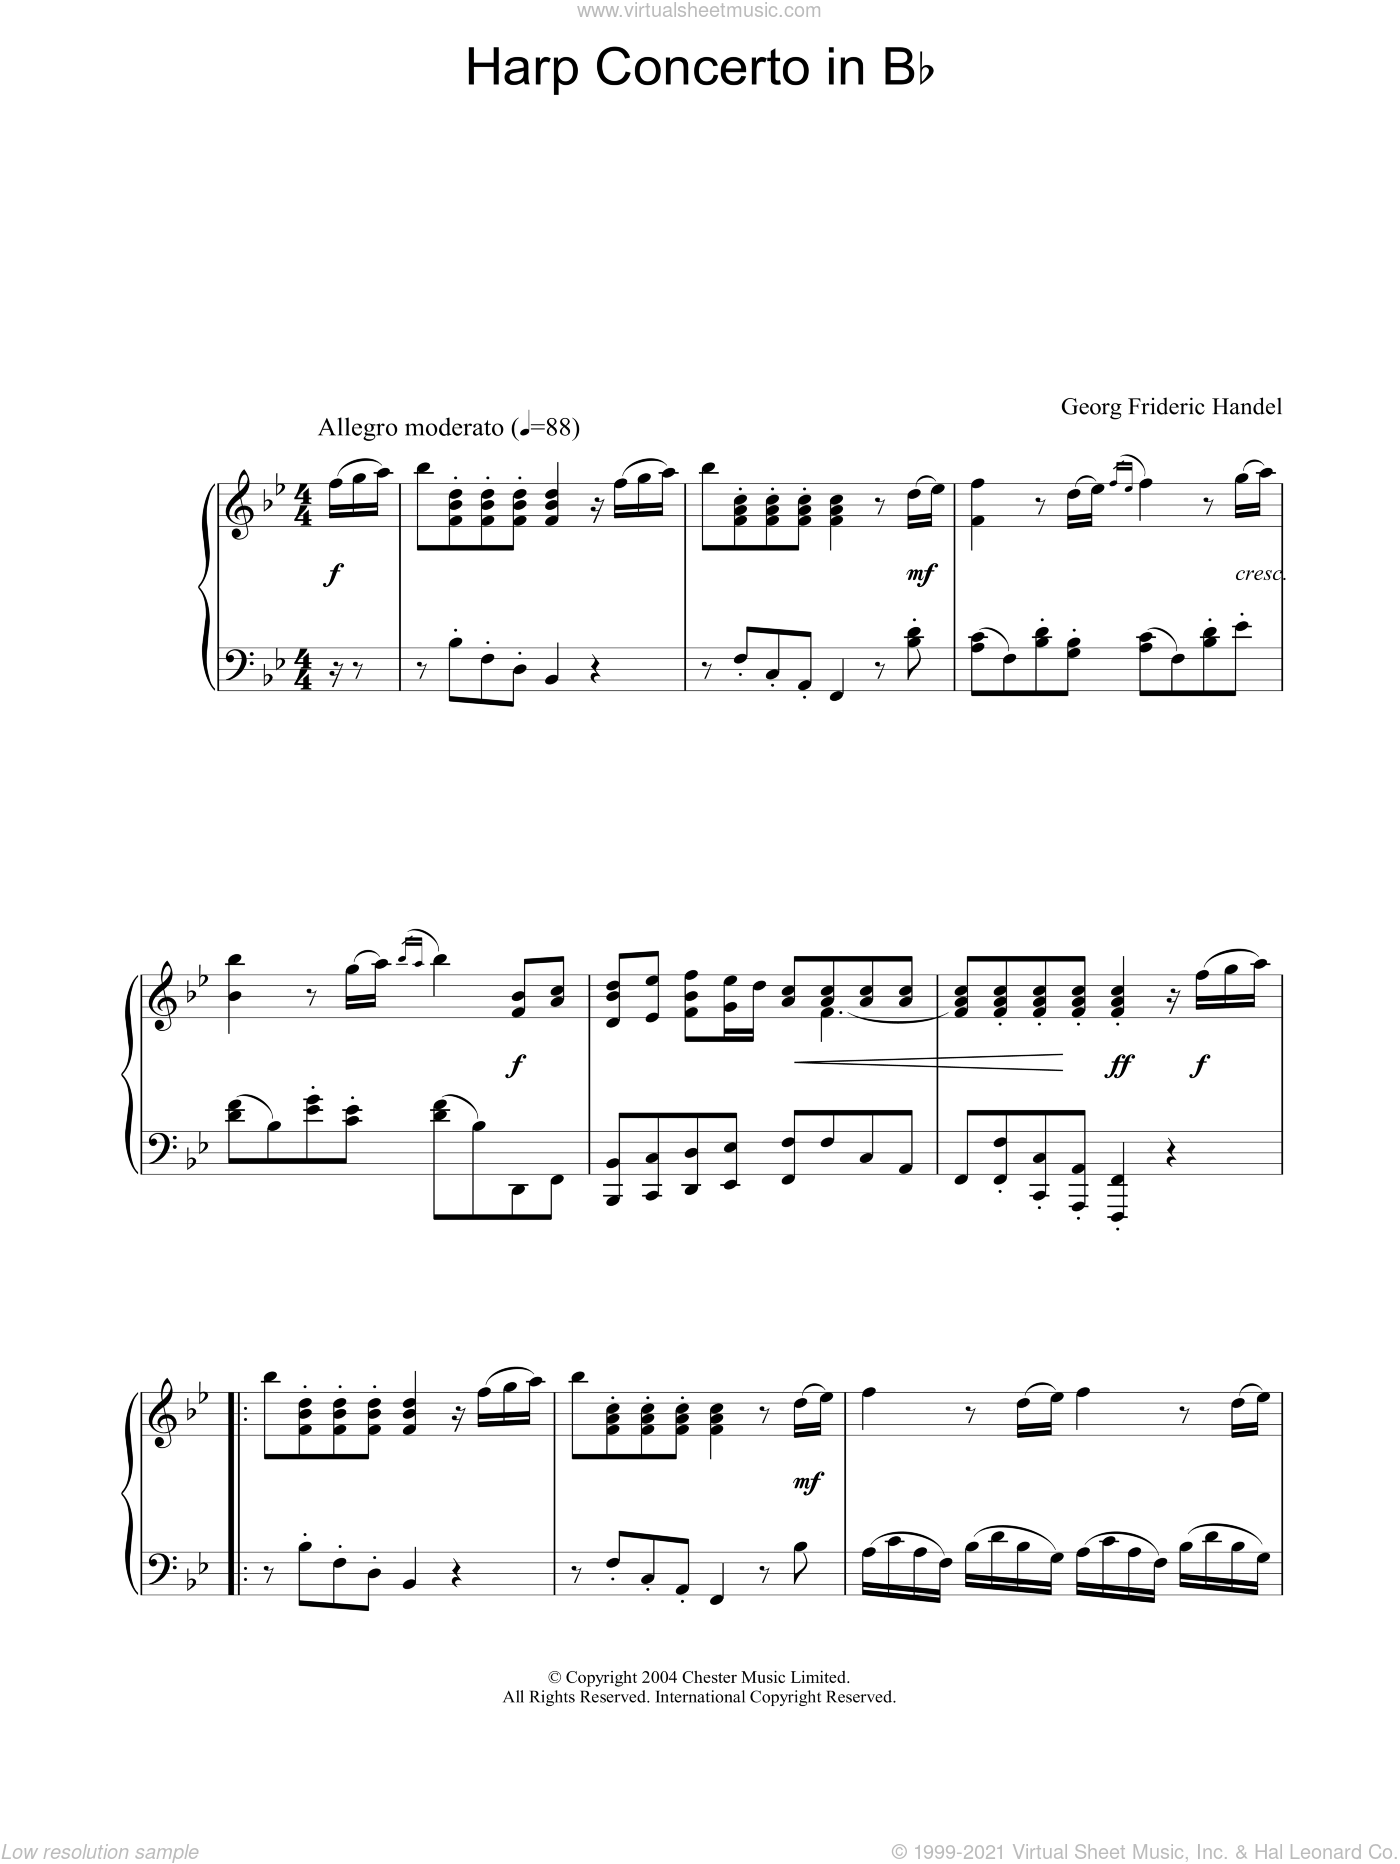 Harp Concerto In Bb sheet music for piano solo by George Frideric Handel